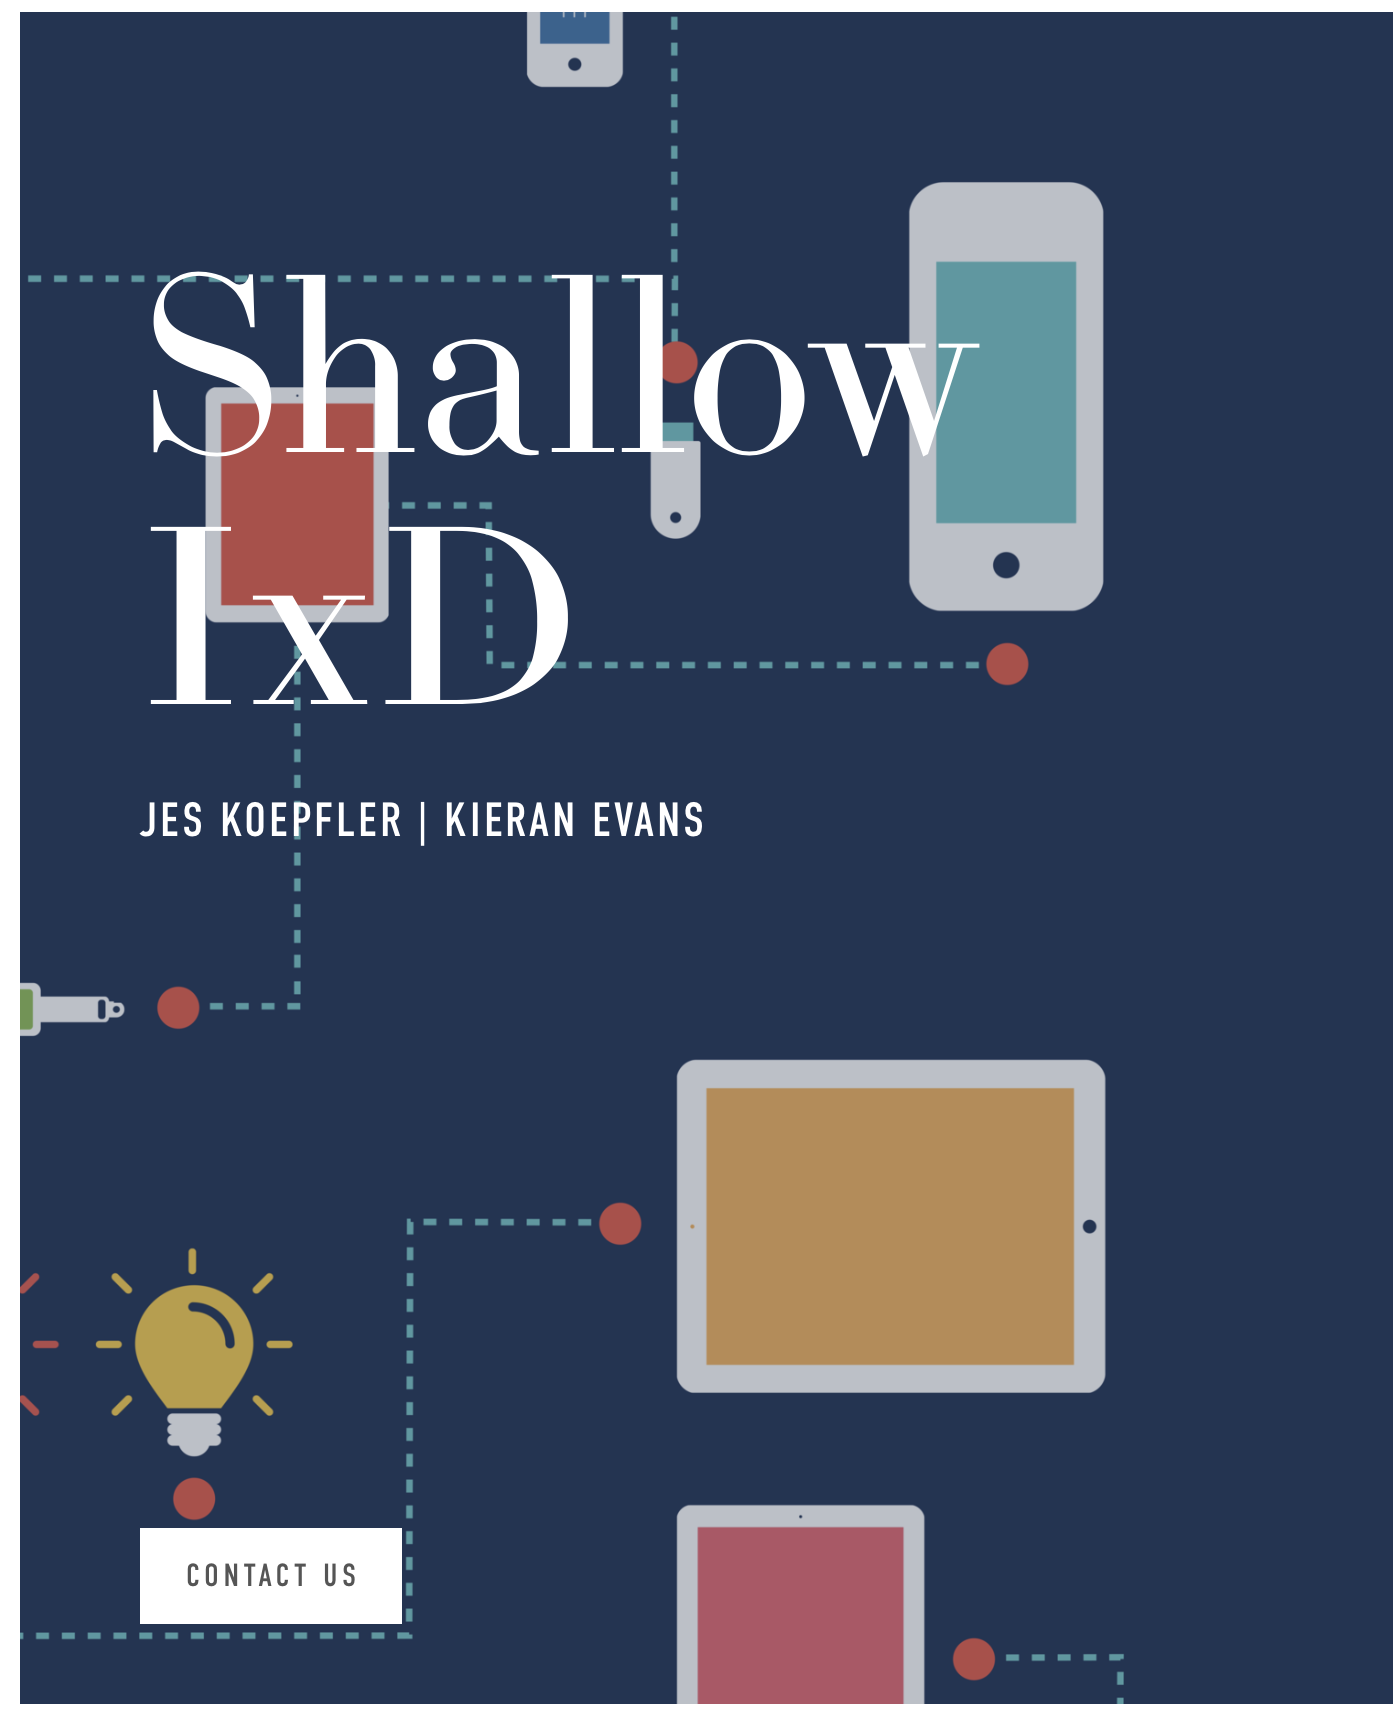 Shallow IxD - Learn more about Shallow Interaction Design principles, and keep up to date on upcoming workshop dates!